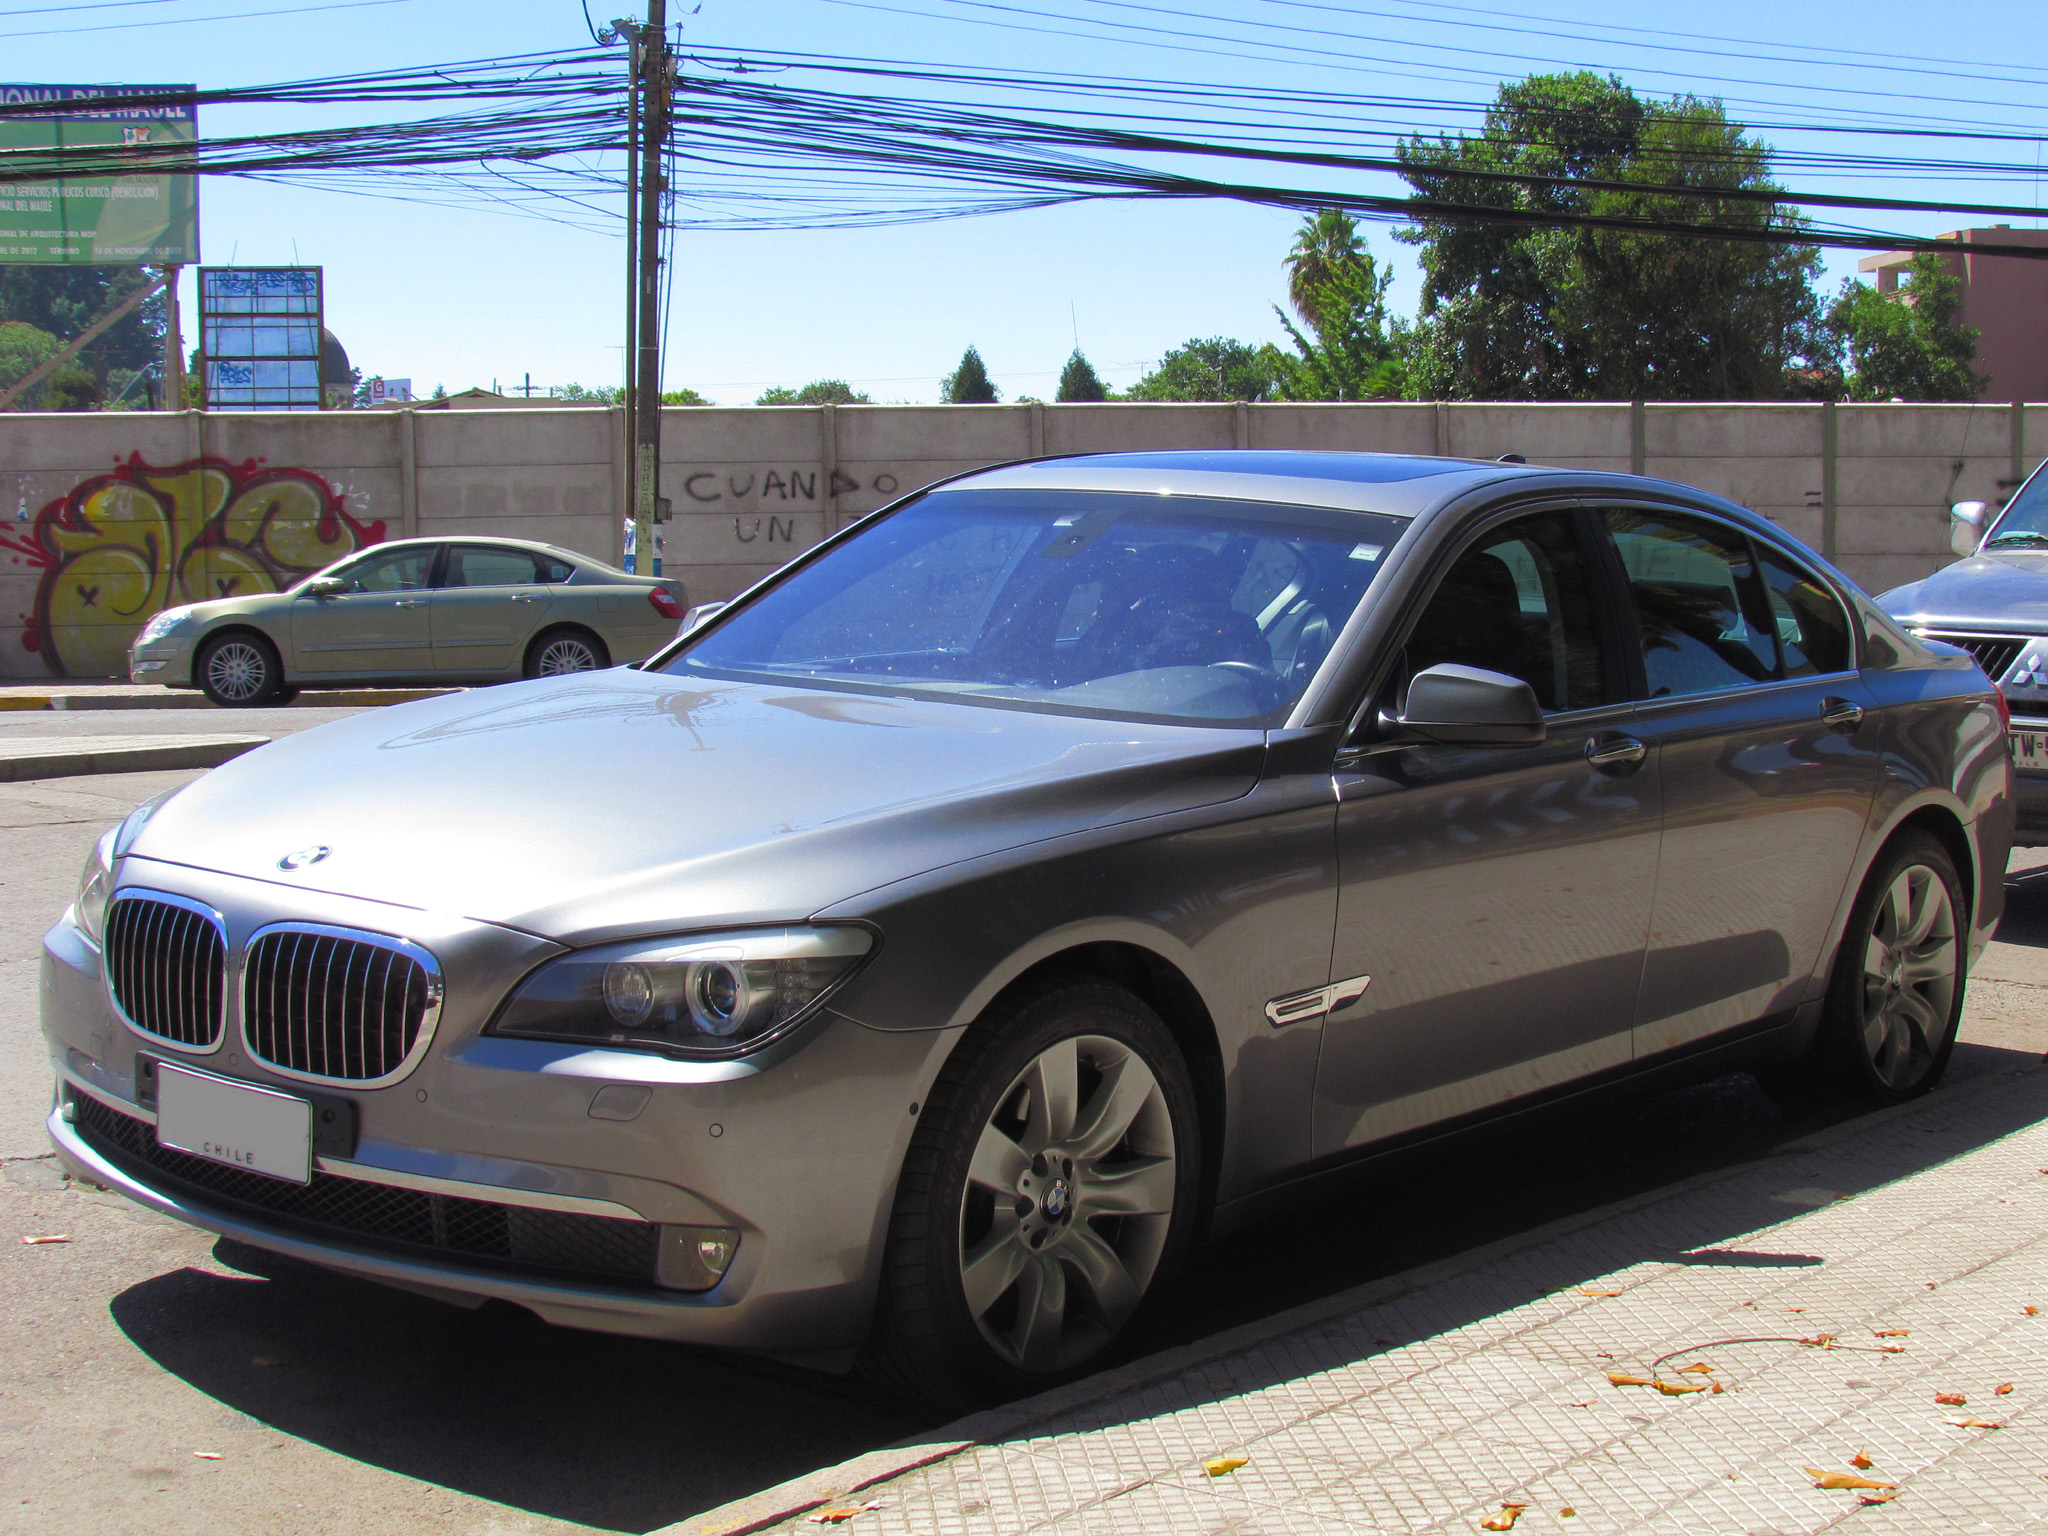 BMW 750i 2012 | Flickr - Photo Sharing!